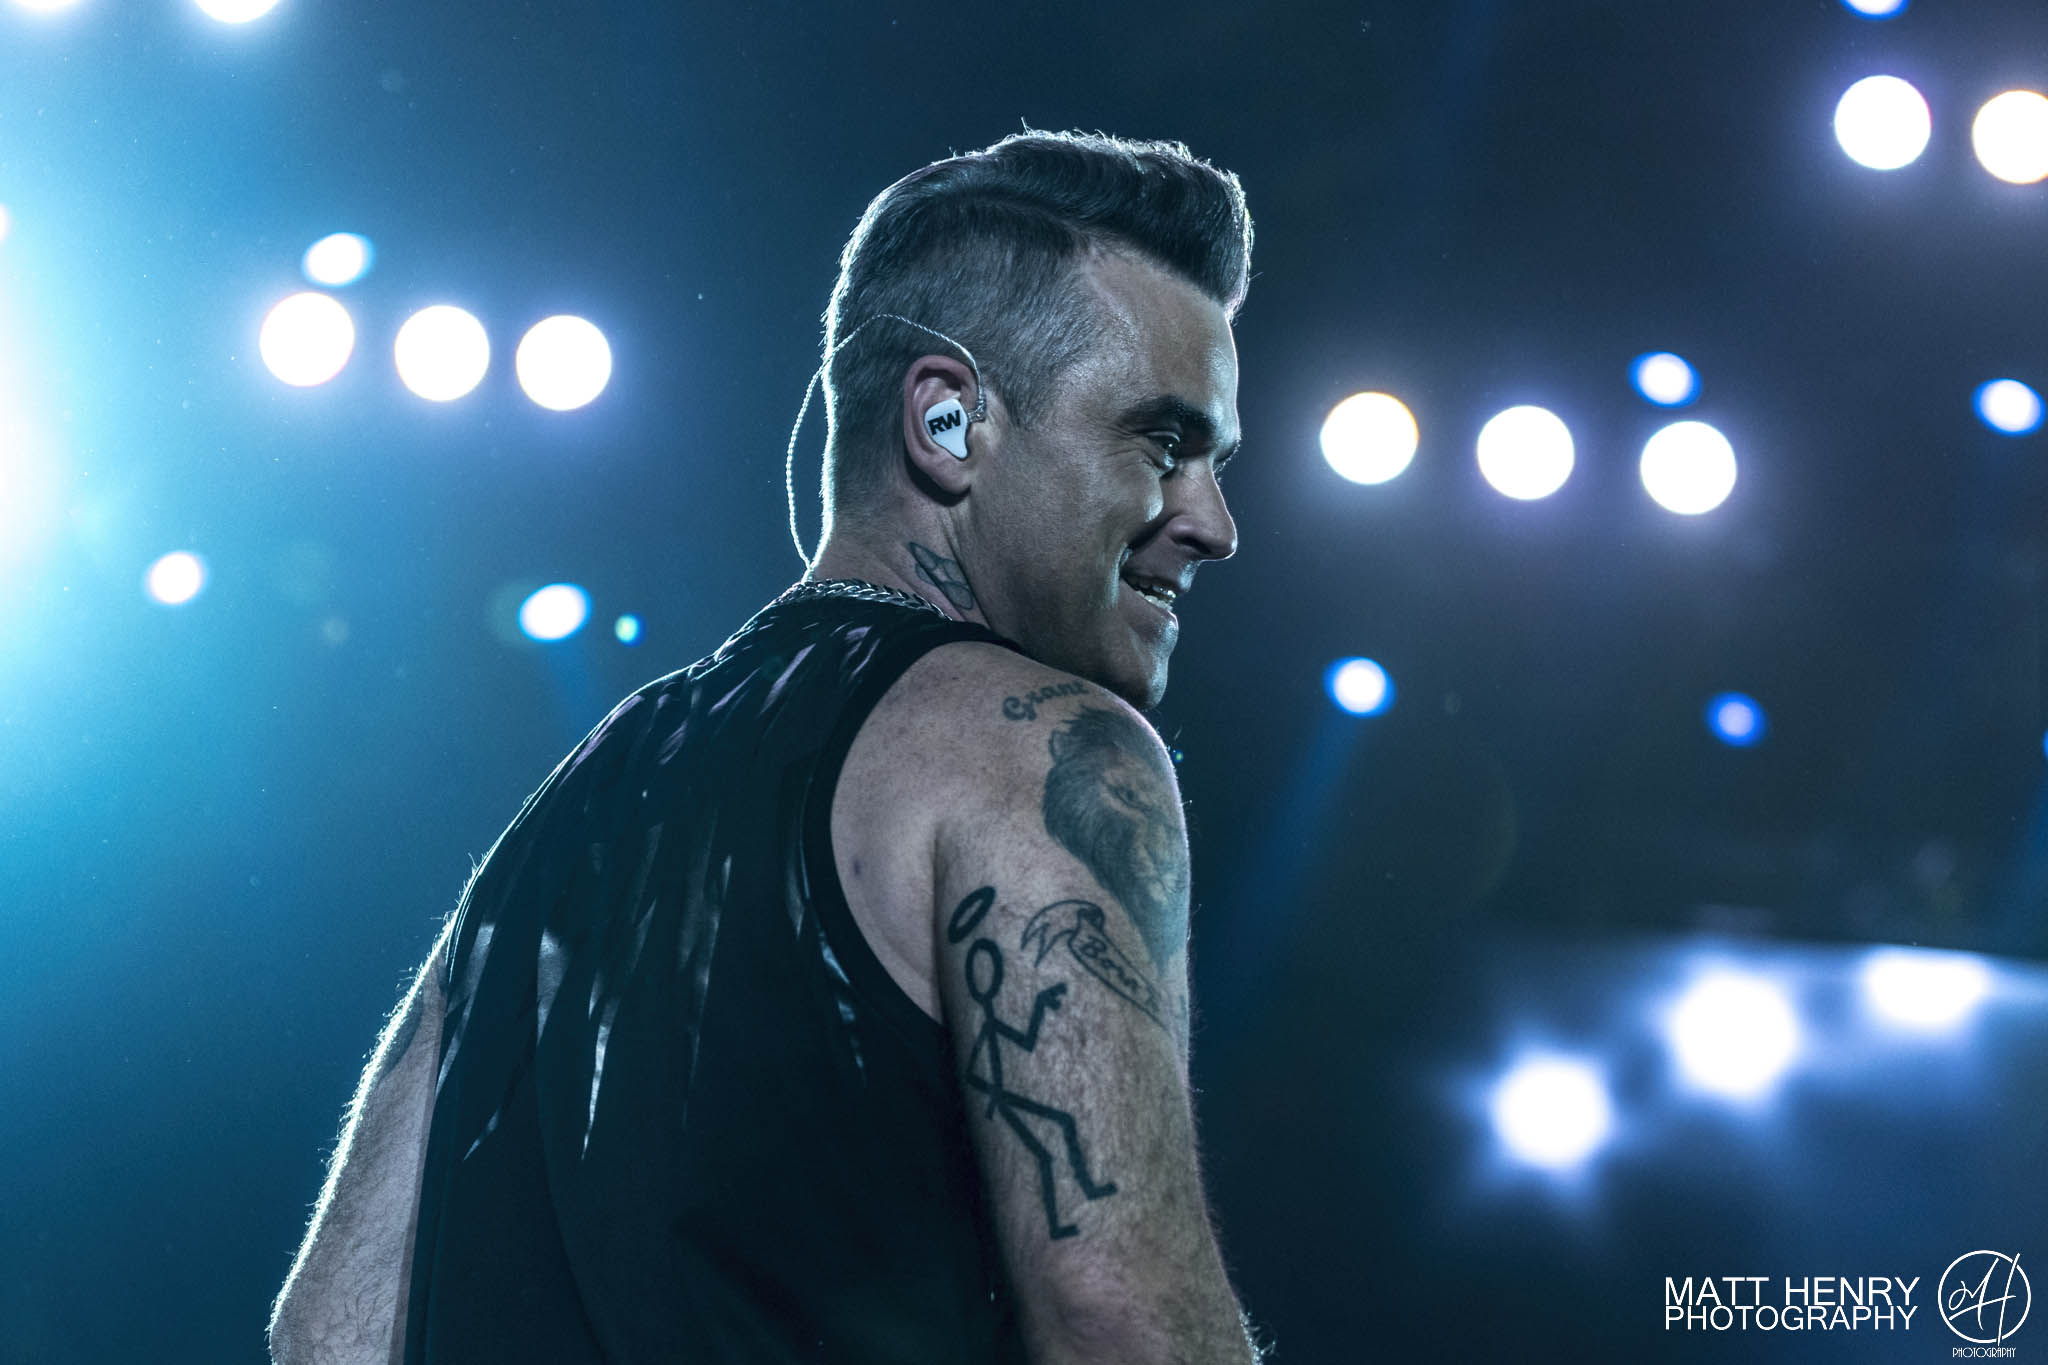 https://i2.wp.com/www.ambientlightblog.com/wp-content/uploads/2018/02/RobbieWilliams_013.jpg